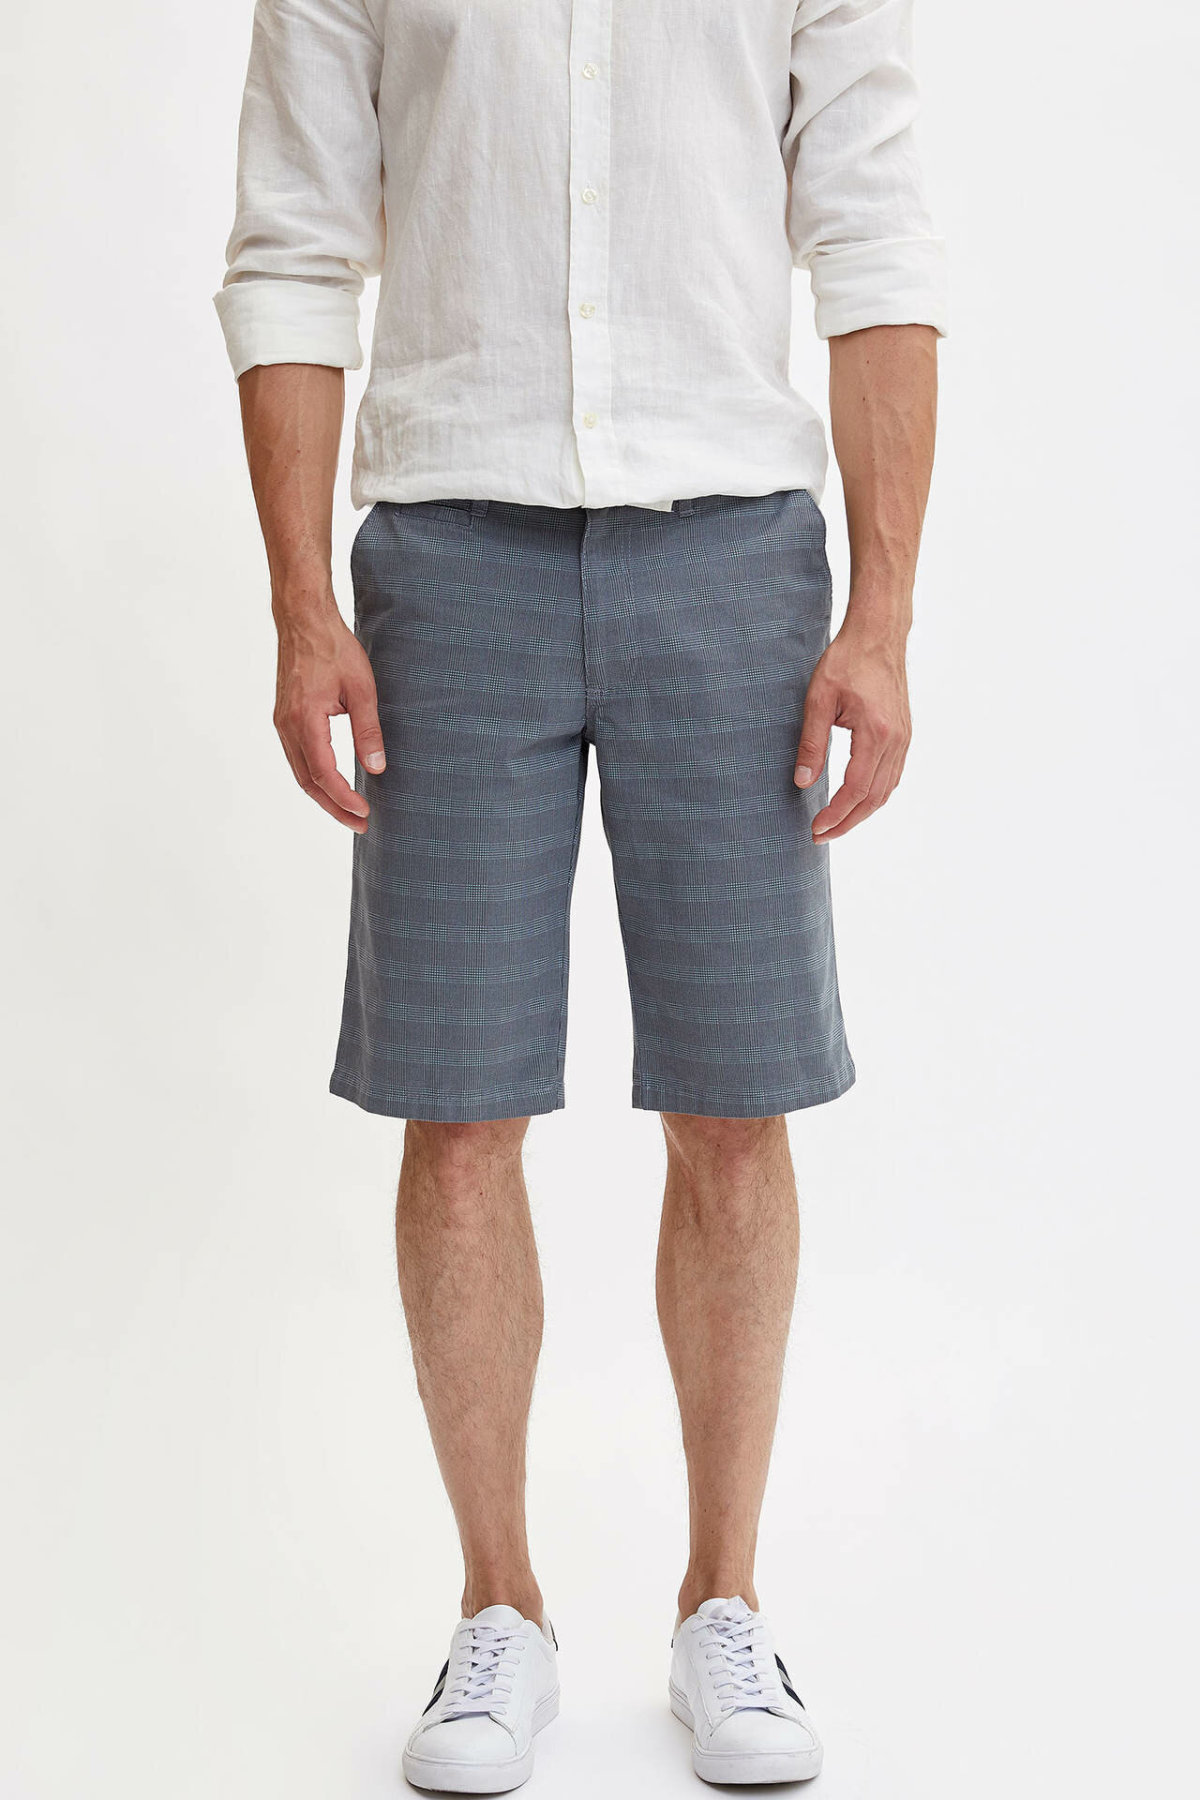 DeFacto Man Summer Casual Plaids Shorts Men Slim Fit Bermuda Shorts Male Mid-waist Short Bottoms-L6060AZ19SM